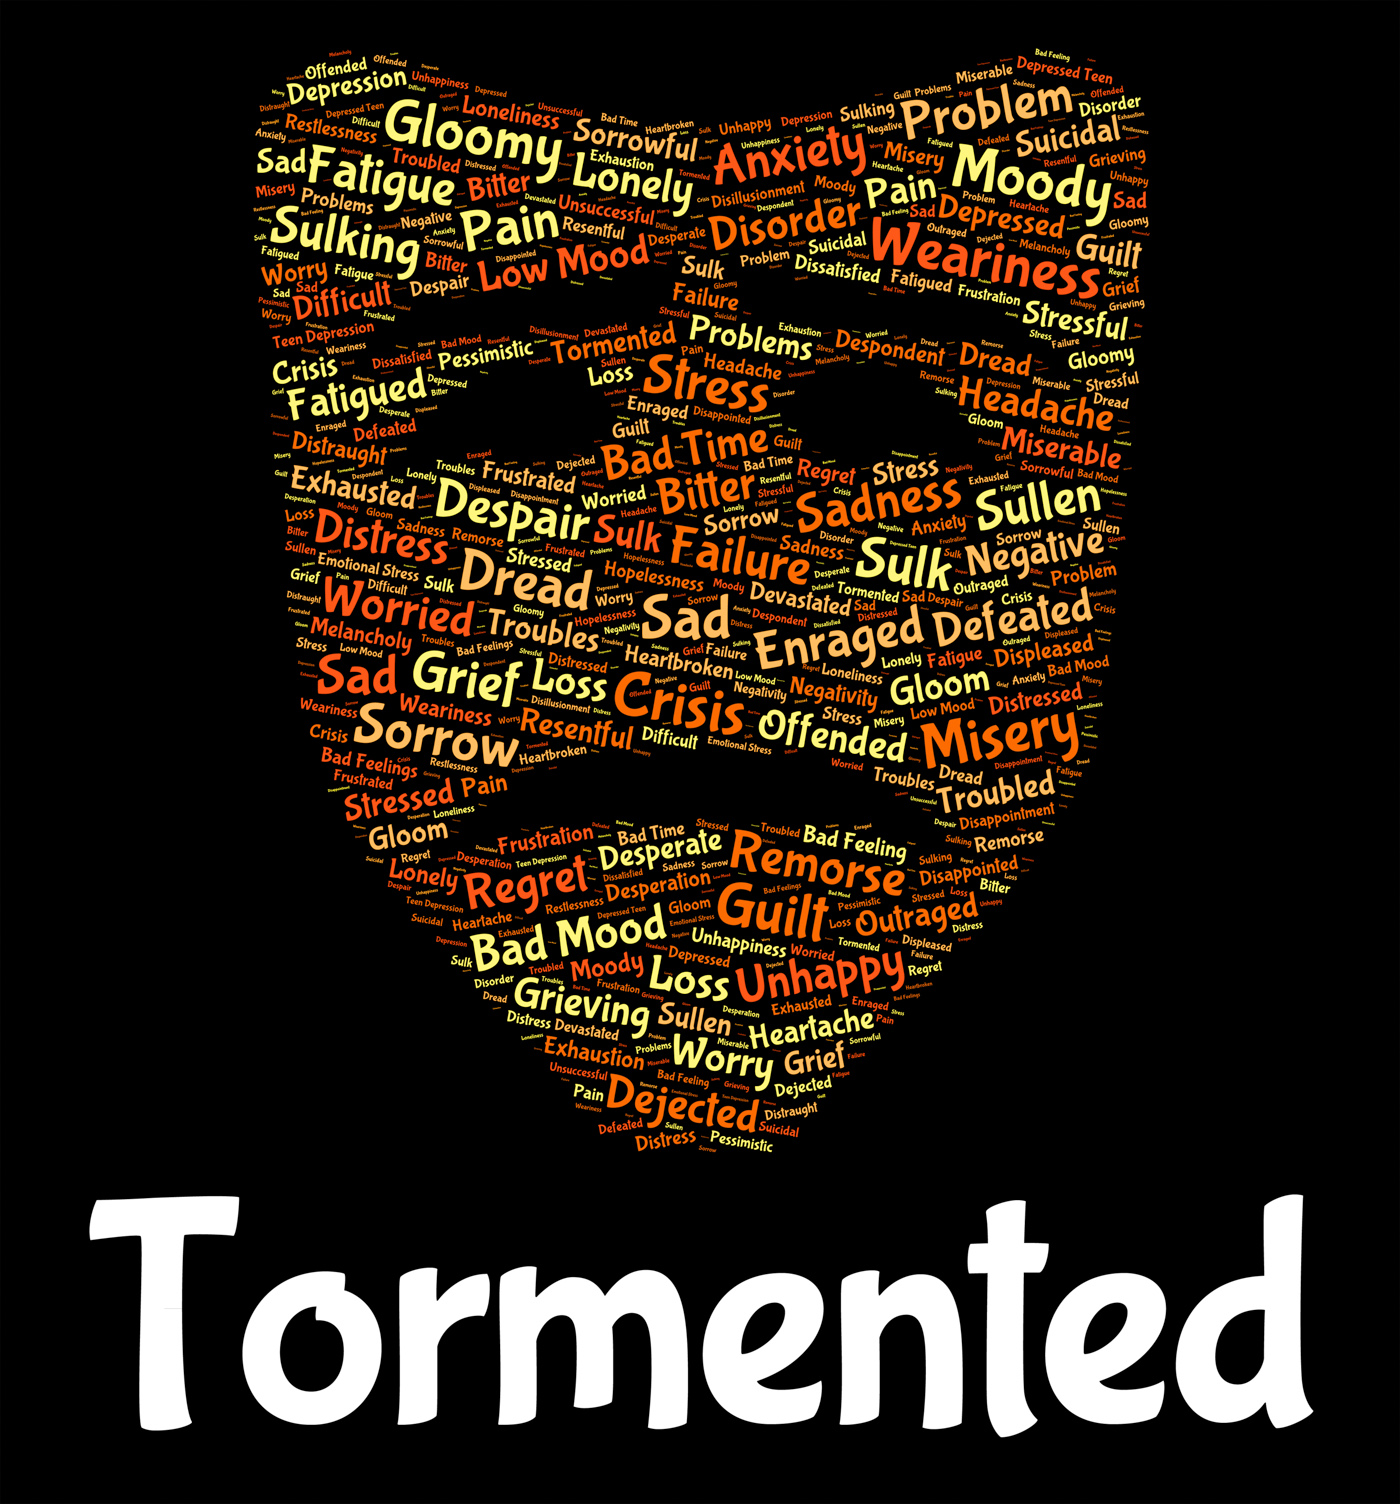 Tormented word represents excruciating wordclouds and pain photo